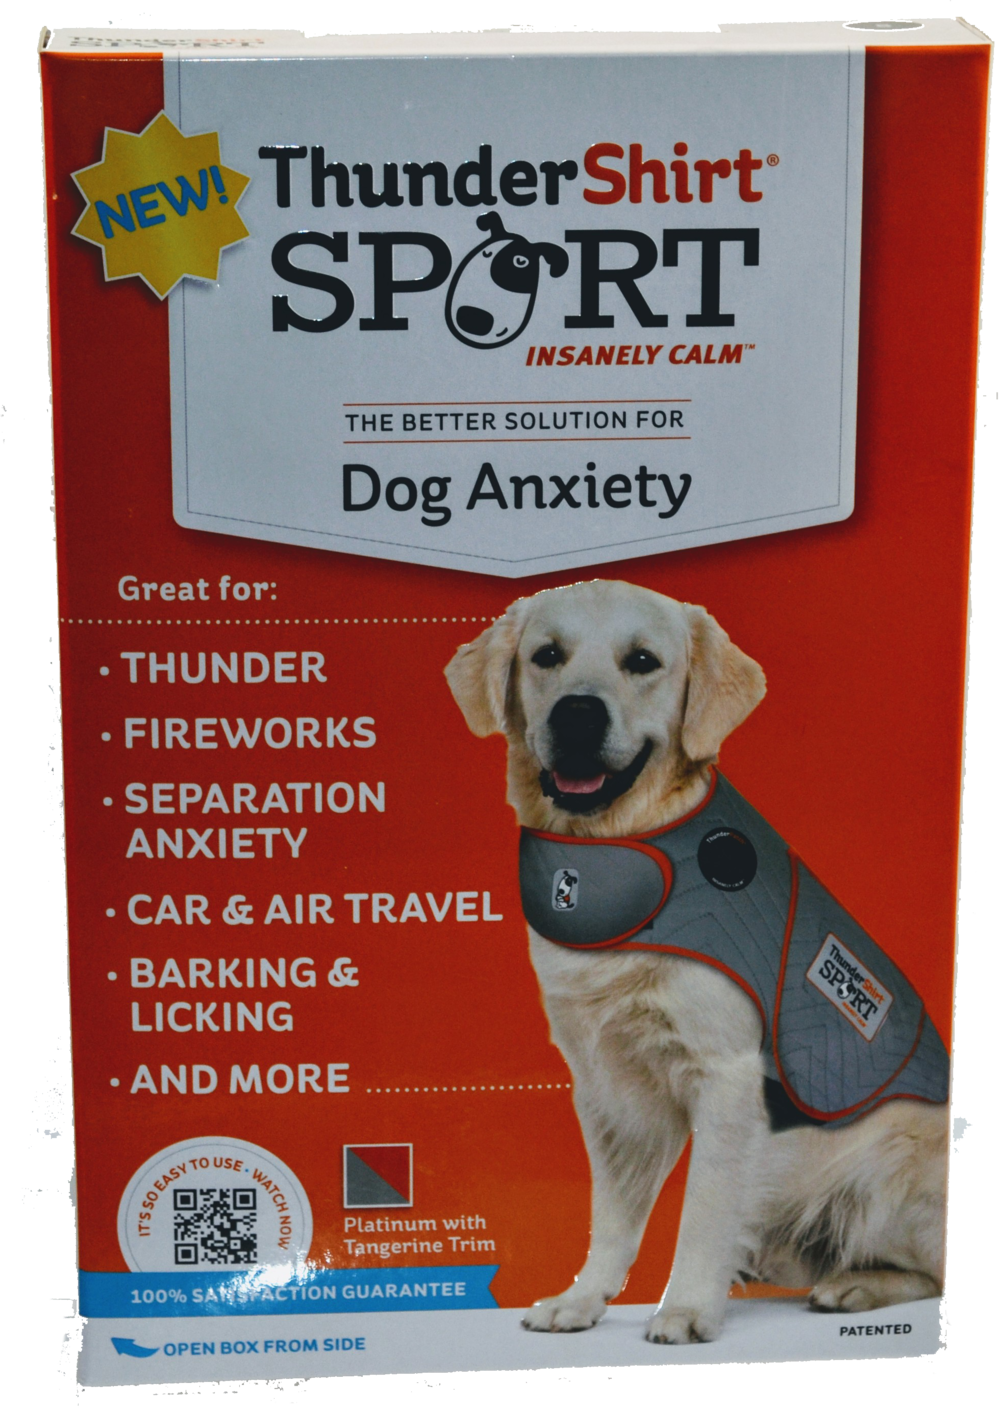 Thundershirt Vest Product for reduced pet anxiety and more, now available at Pet Express Animal Hospital.